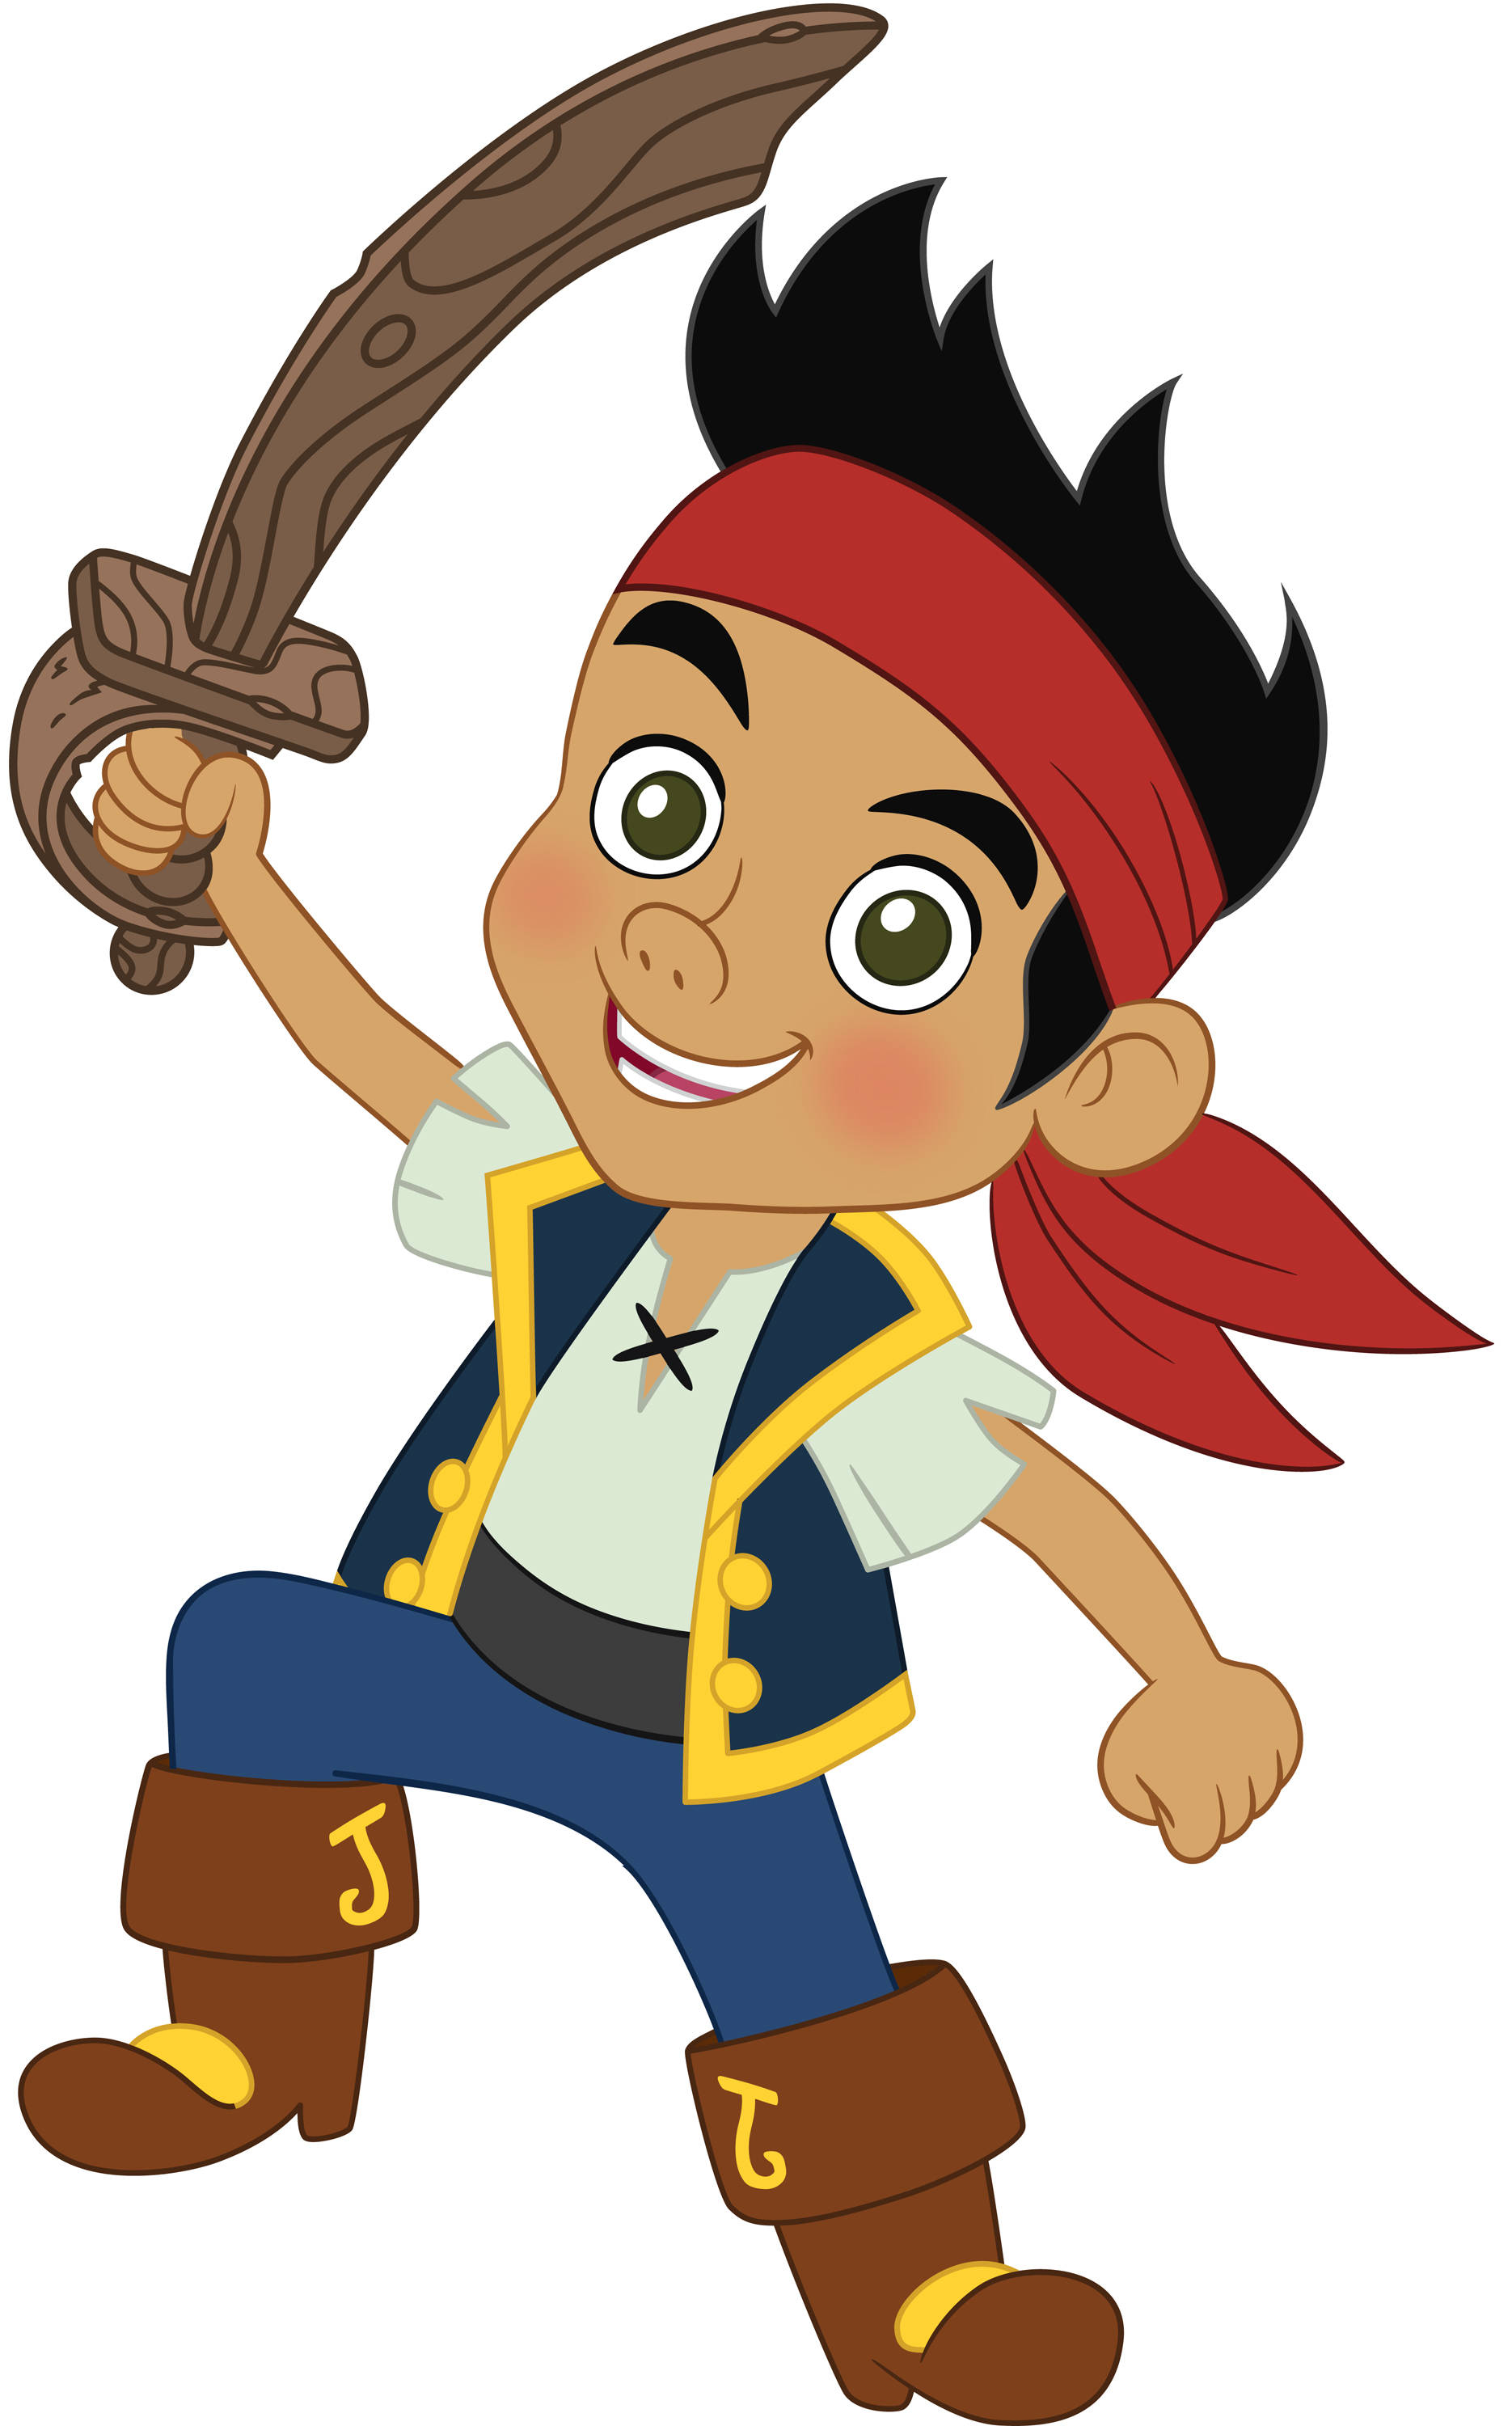 Young Pirate Kid Mascot